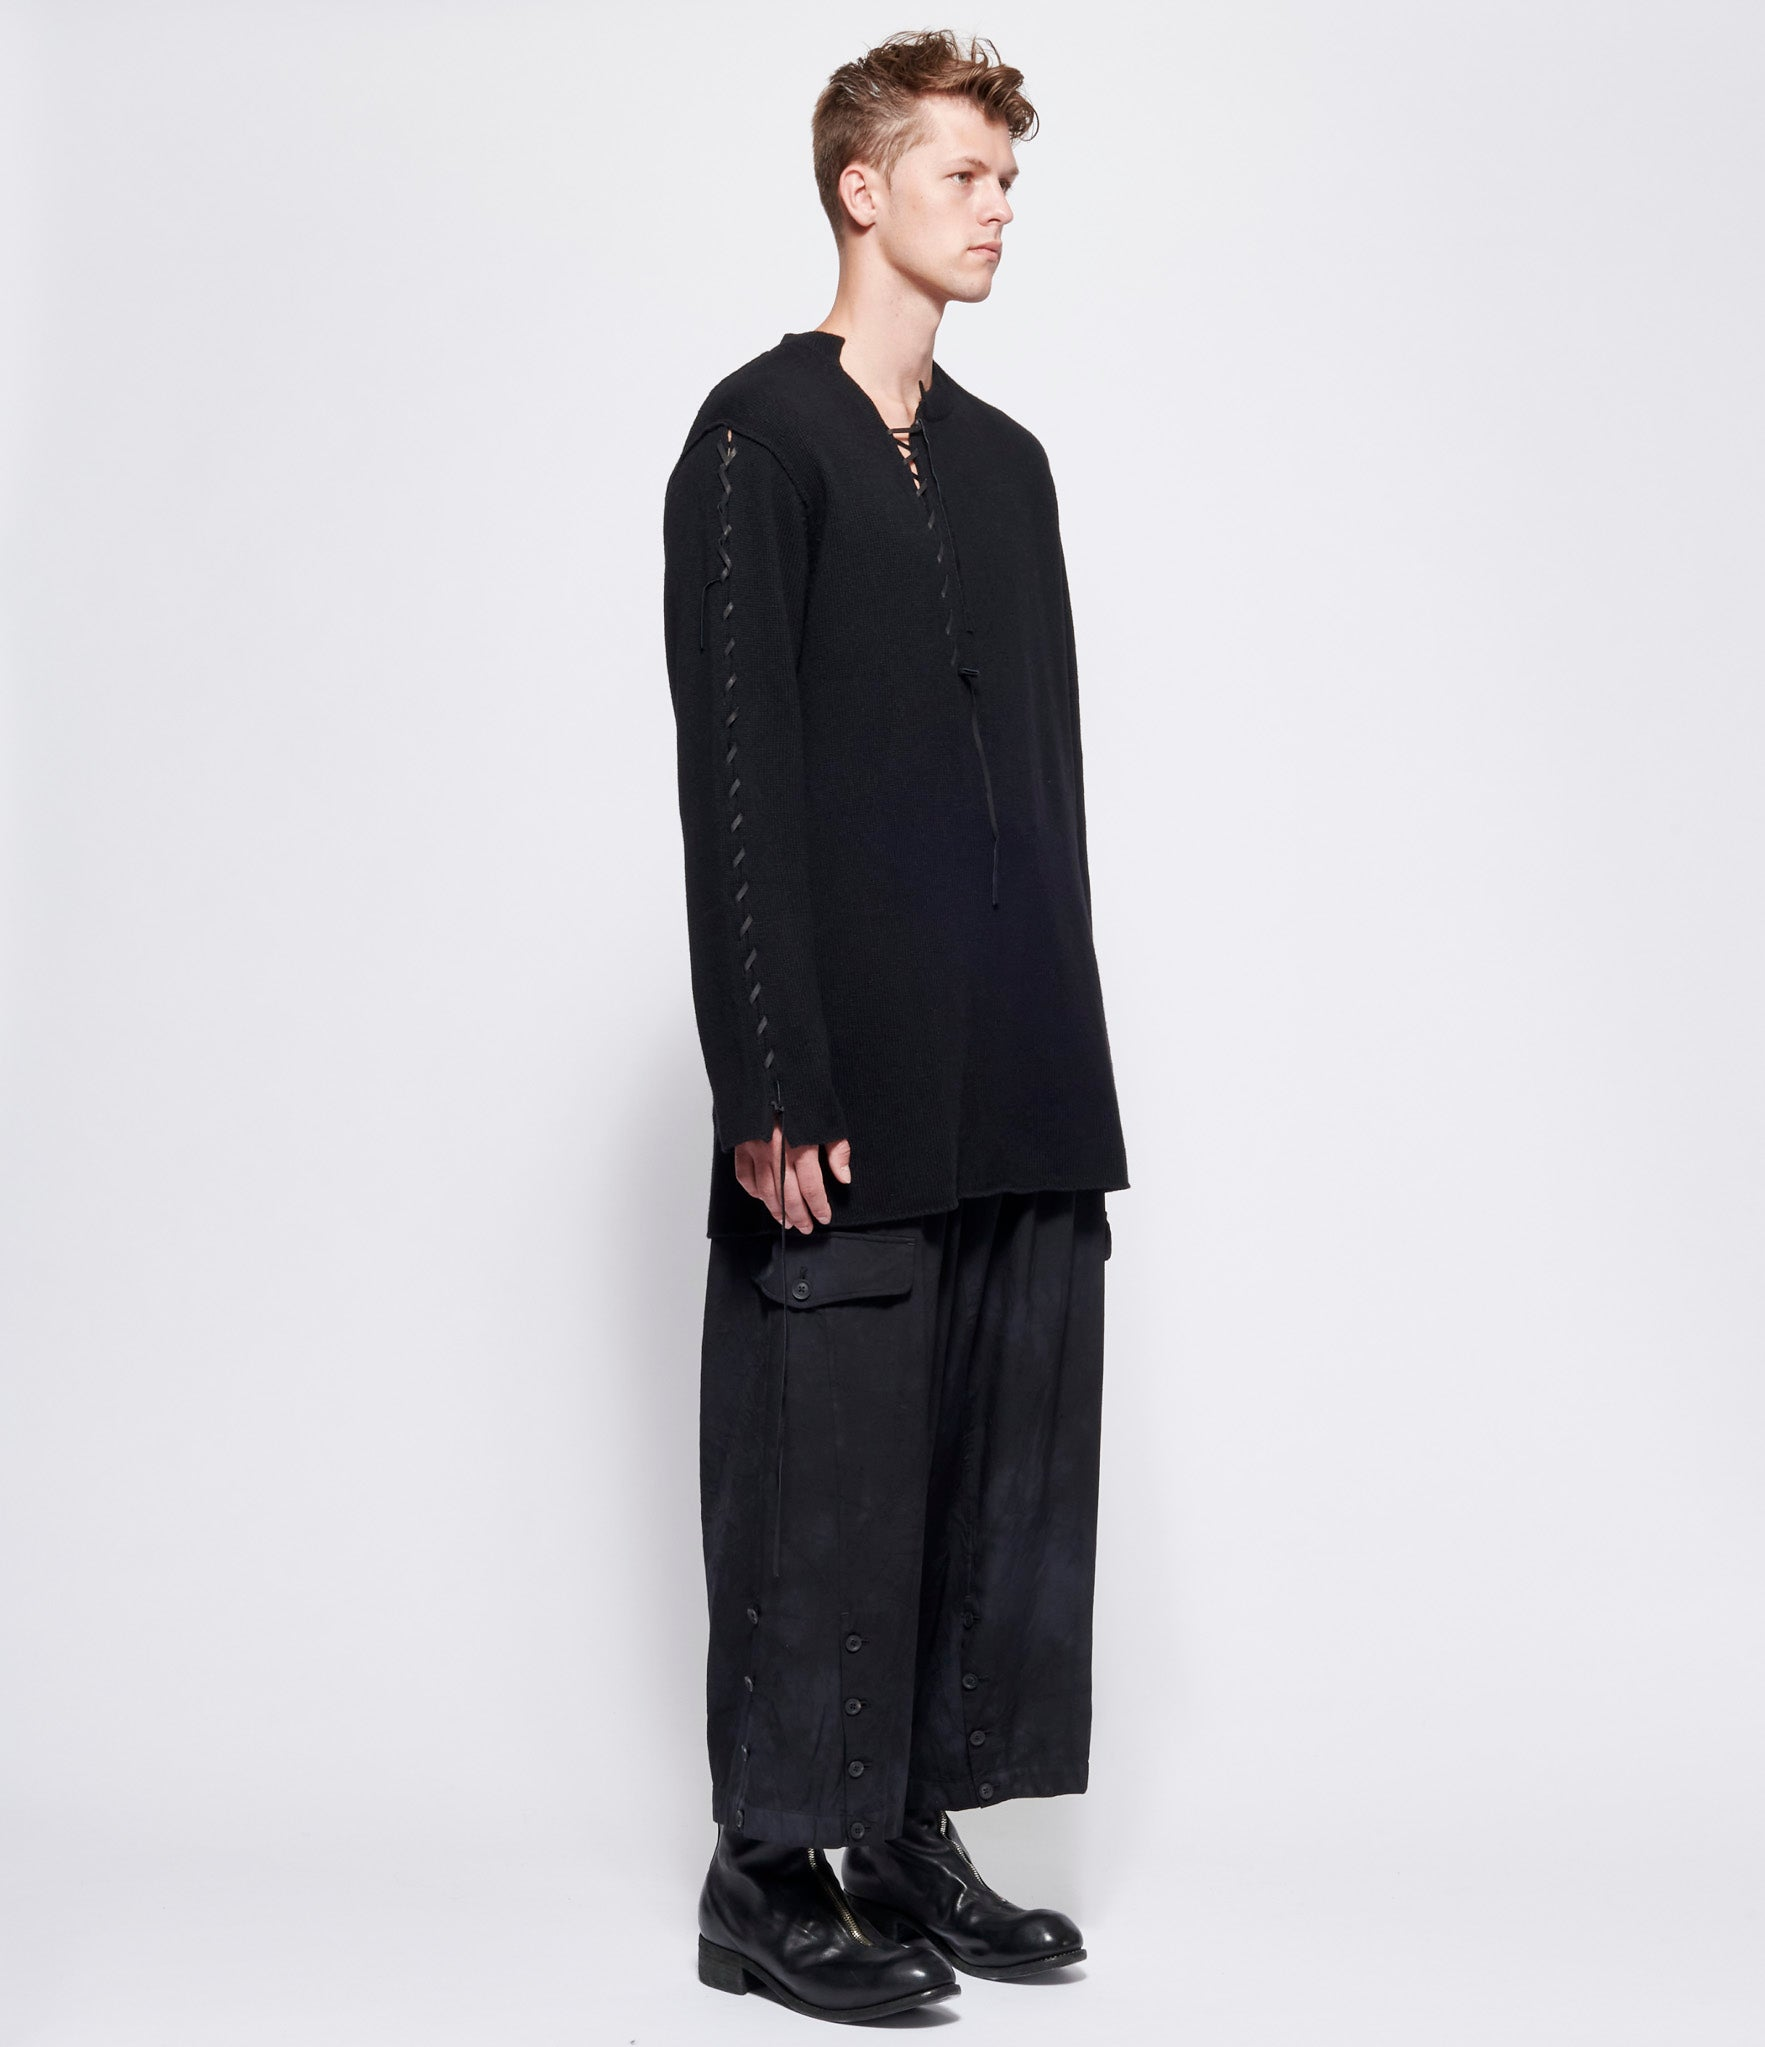 Yohji Yamamoto Pour Homme Leather Cord String Round Neck Sweater